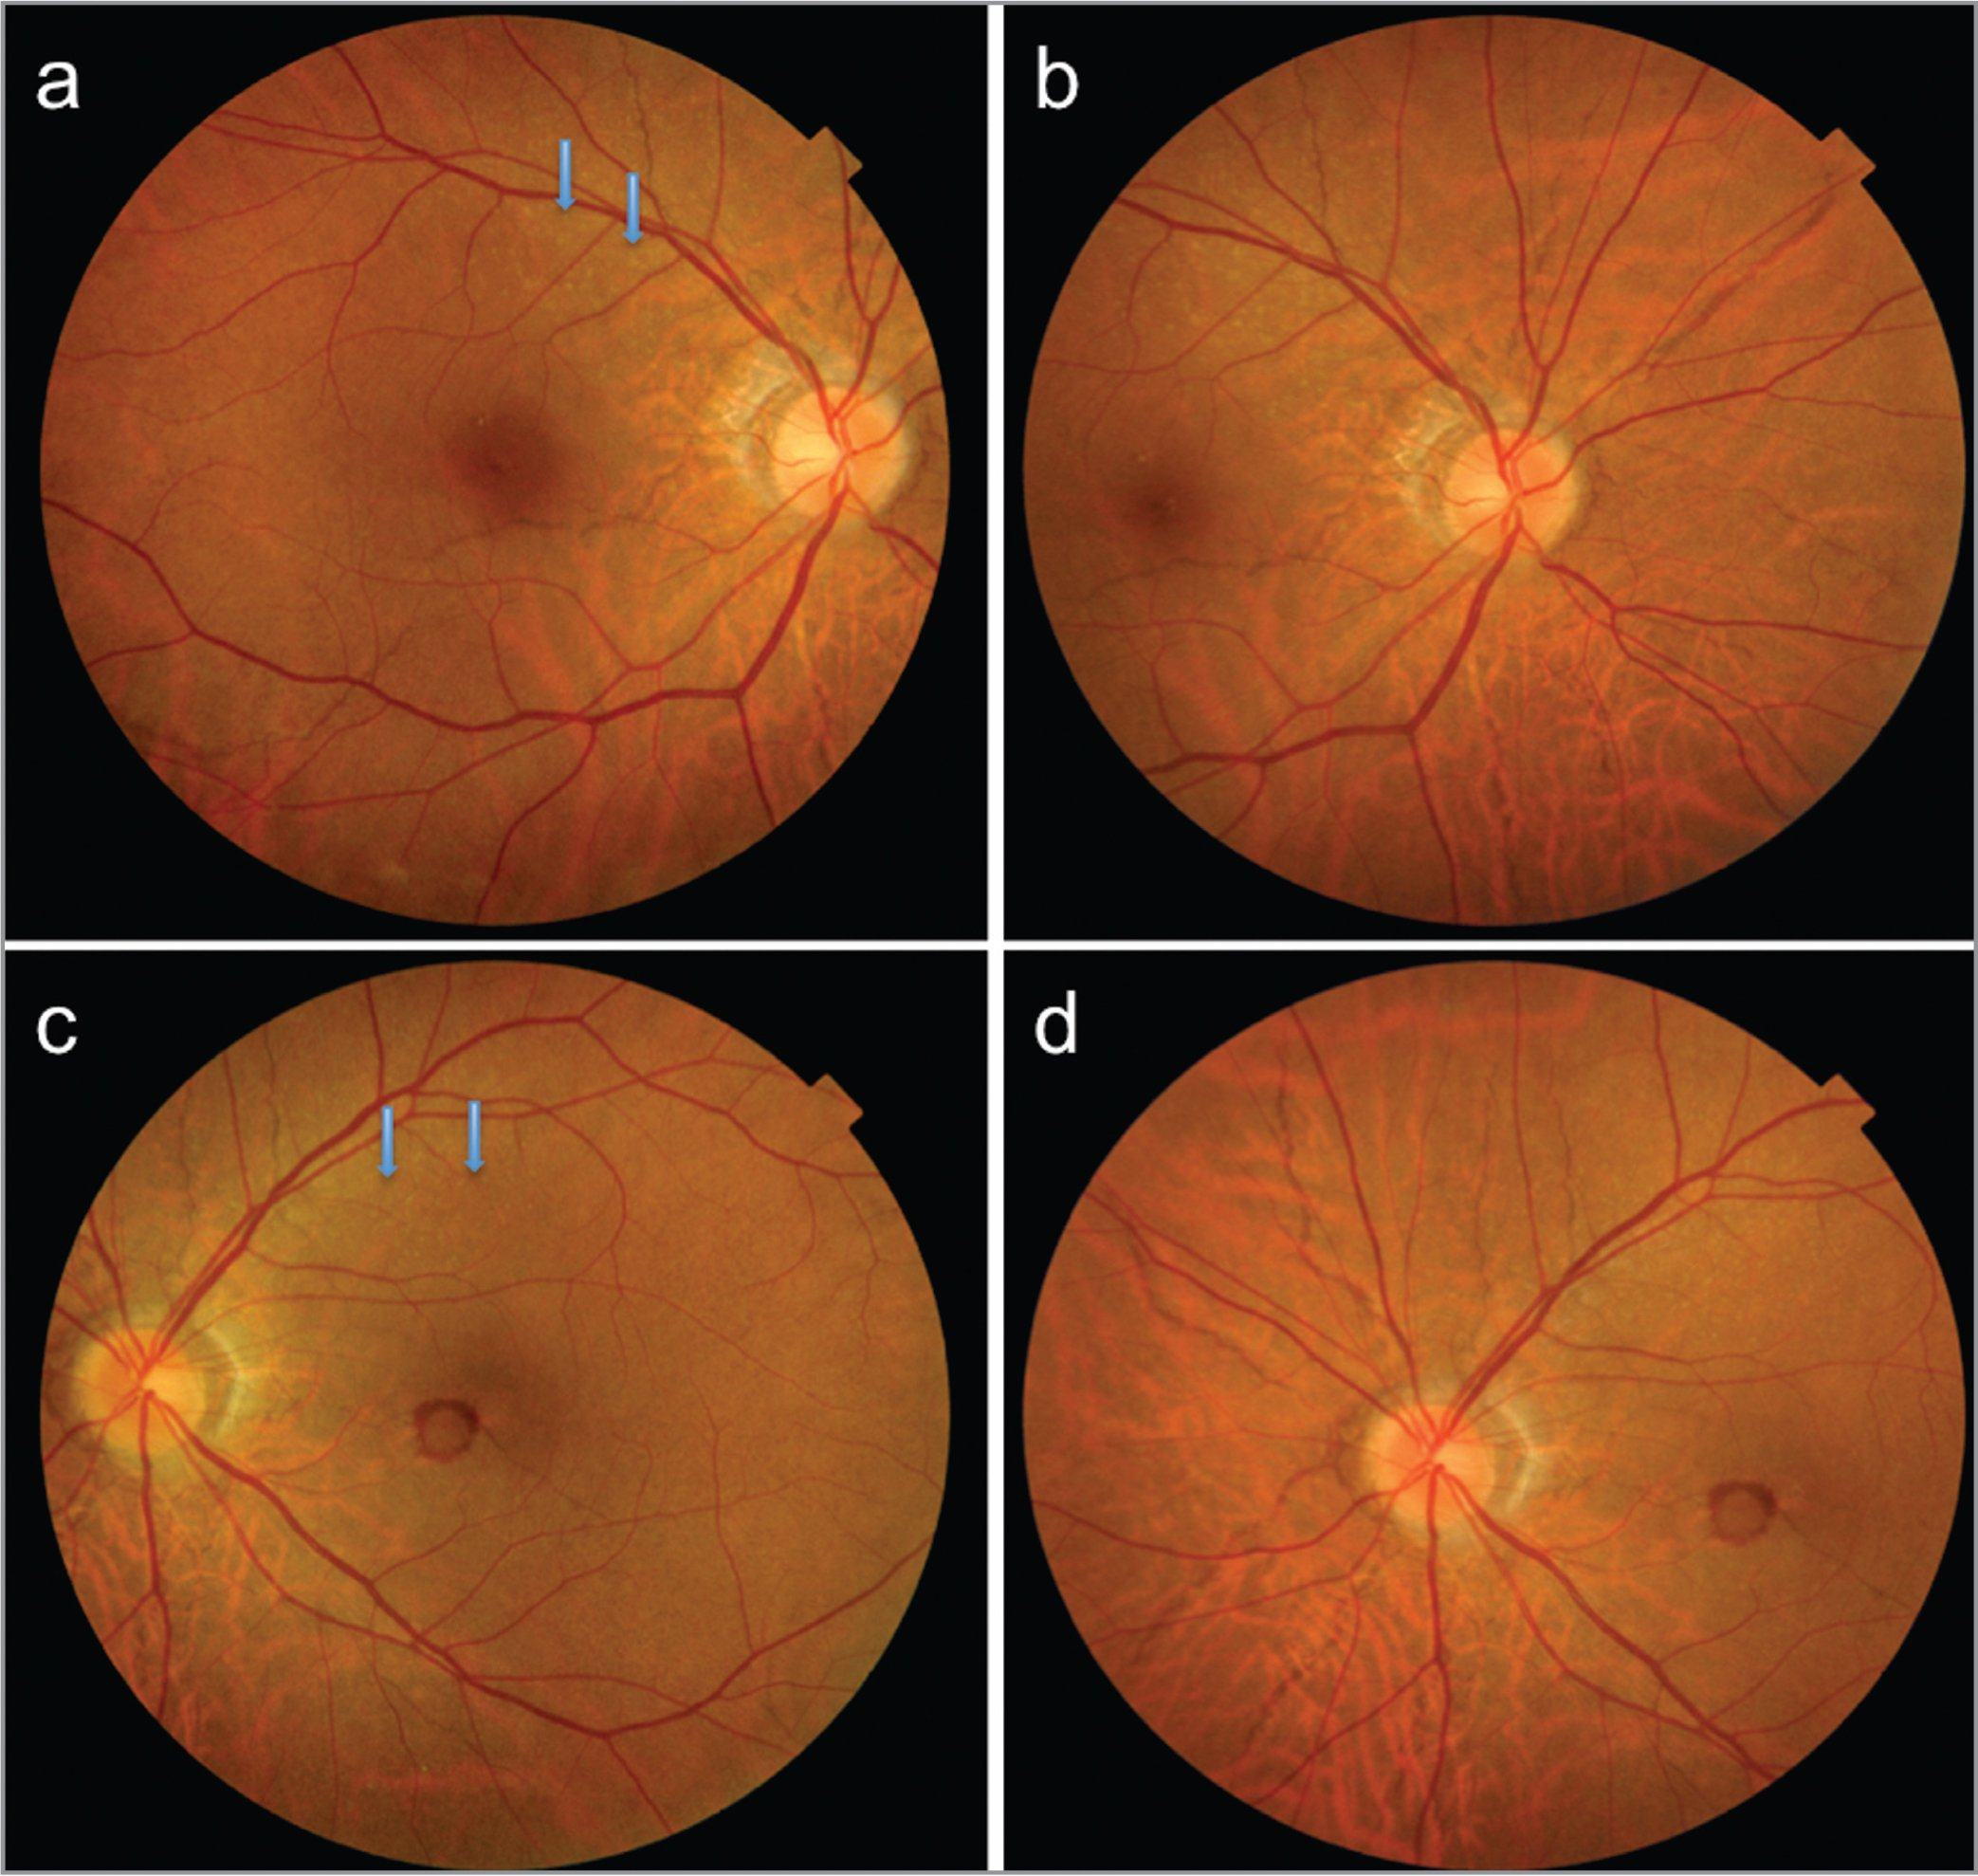 Color Fundus Photographs Of The Right Eye A And Left C